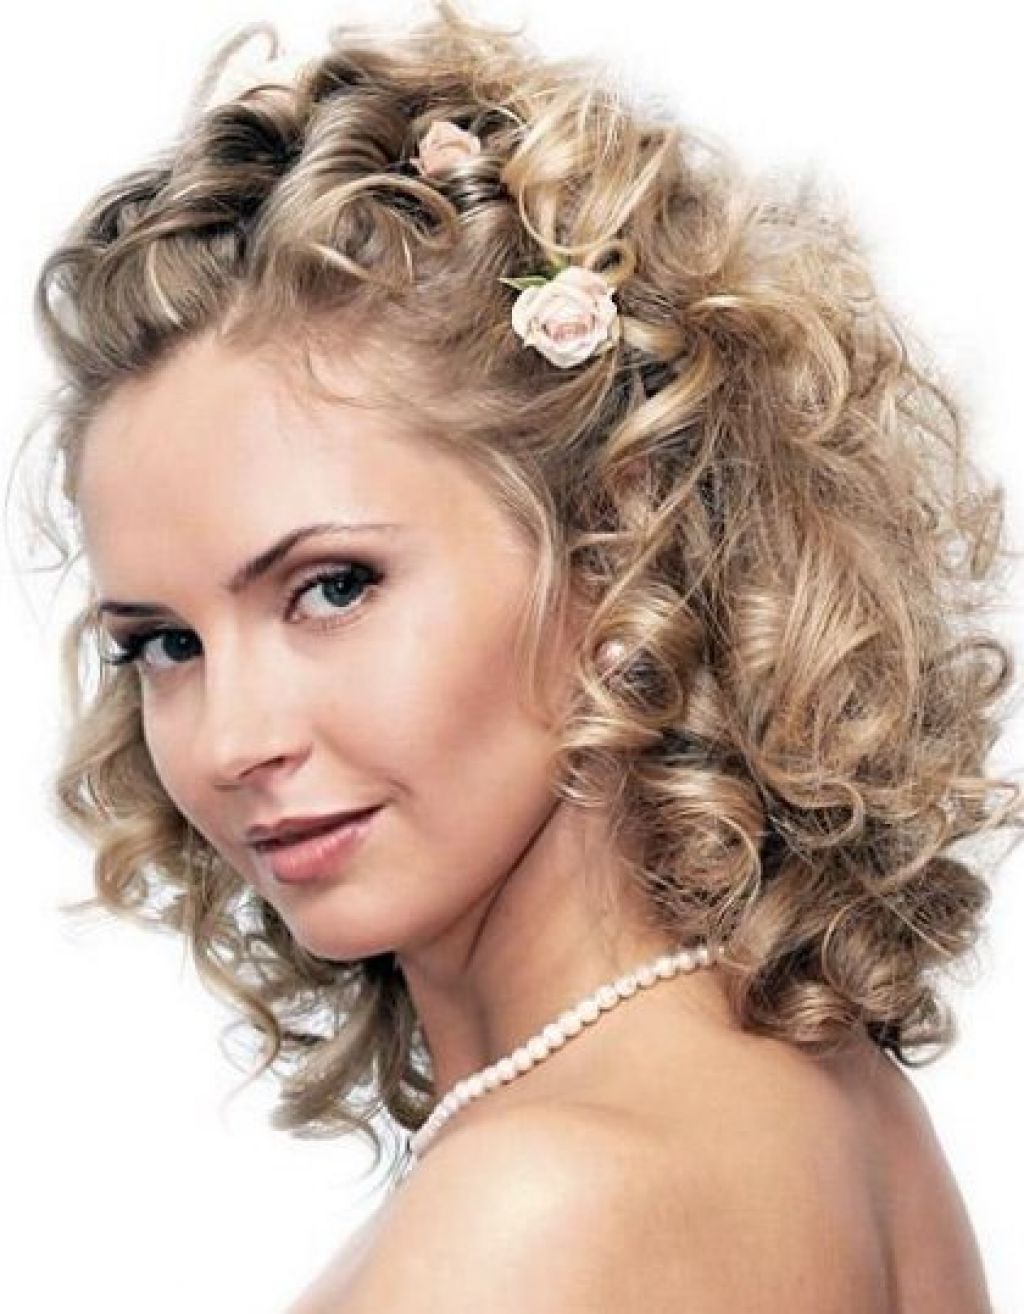 Women Curly Wedding Hairstyles For Medium Length Hair Naturally Throughout Well Known Hairstyles For Medium Length Hair For Wedding (View 5 of 15)